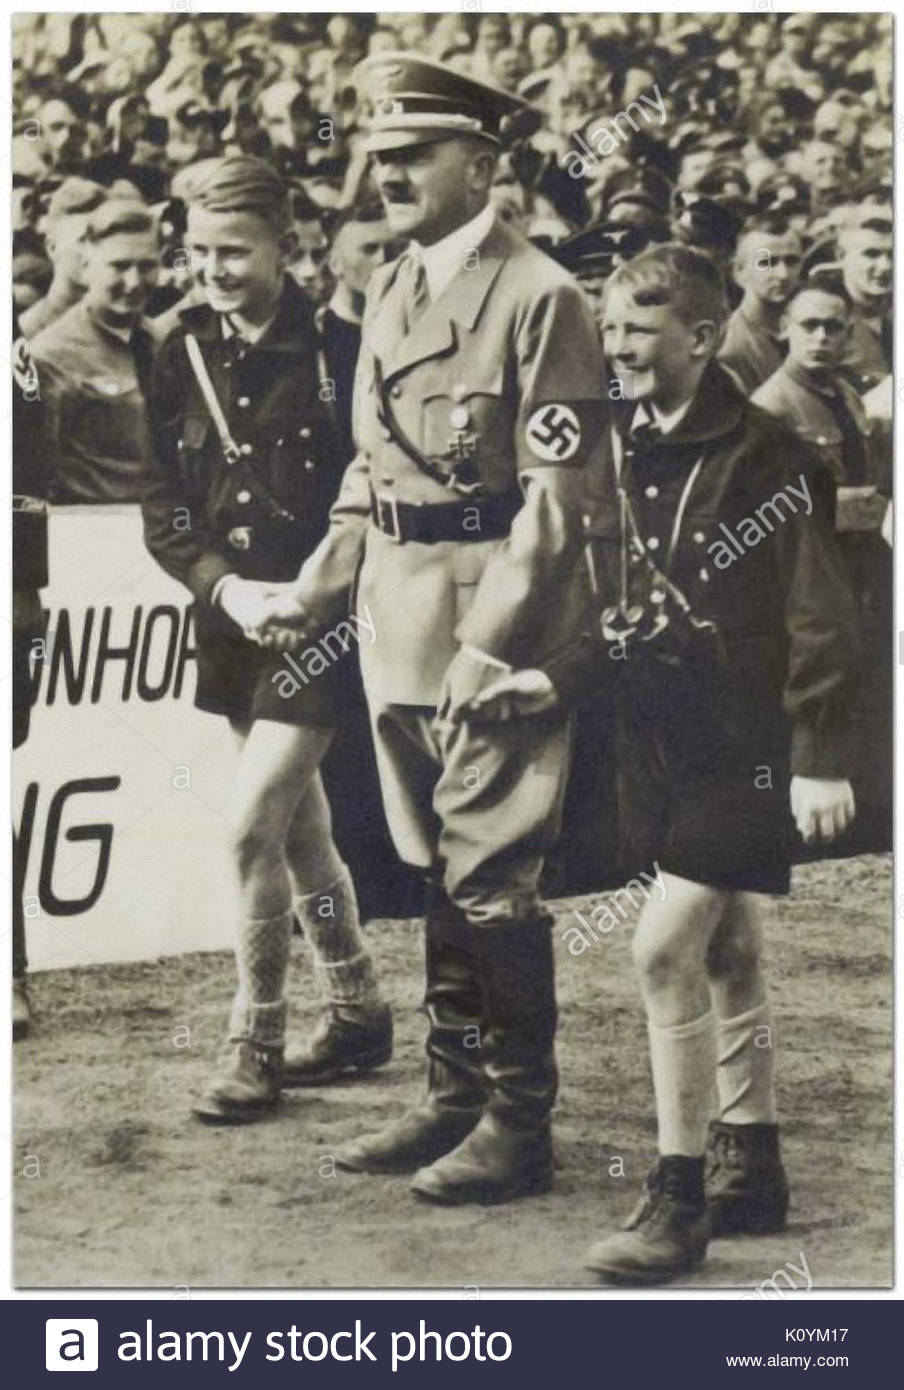 the fall of adolf hitler and the nazi of germany Adolf hitler was born in an austrian town near the border of germany he was the son of working class parents, a short tempered civil servant and a gentle catholic housewife 2.